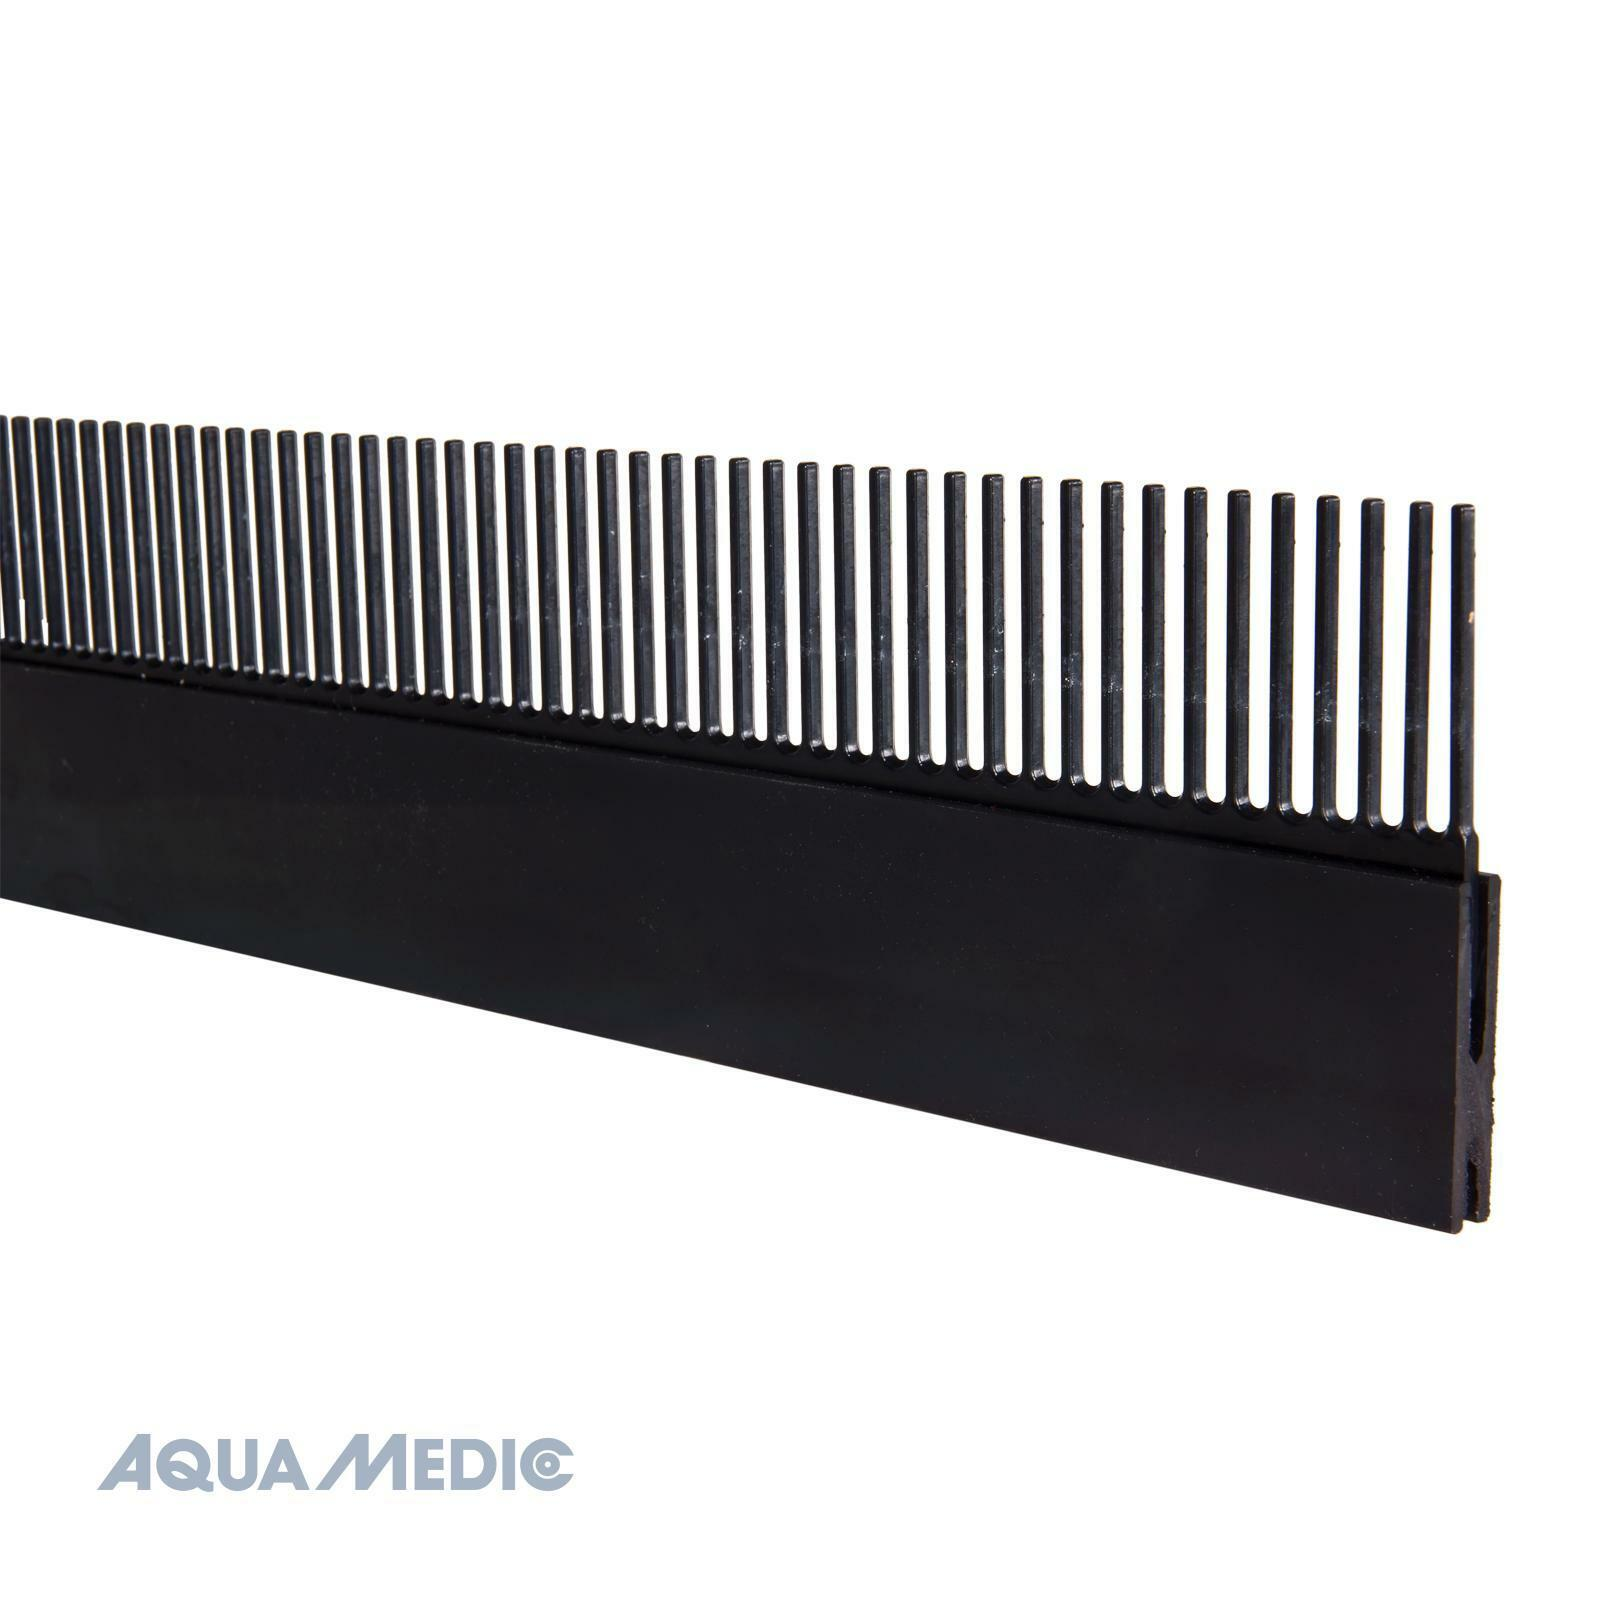 New Aquamedic Large Overflow comb 500mm